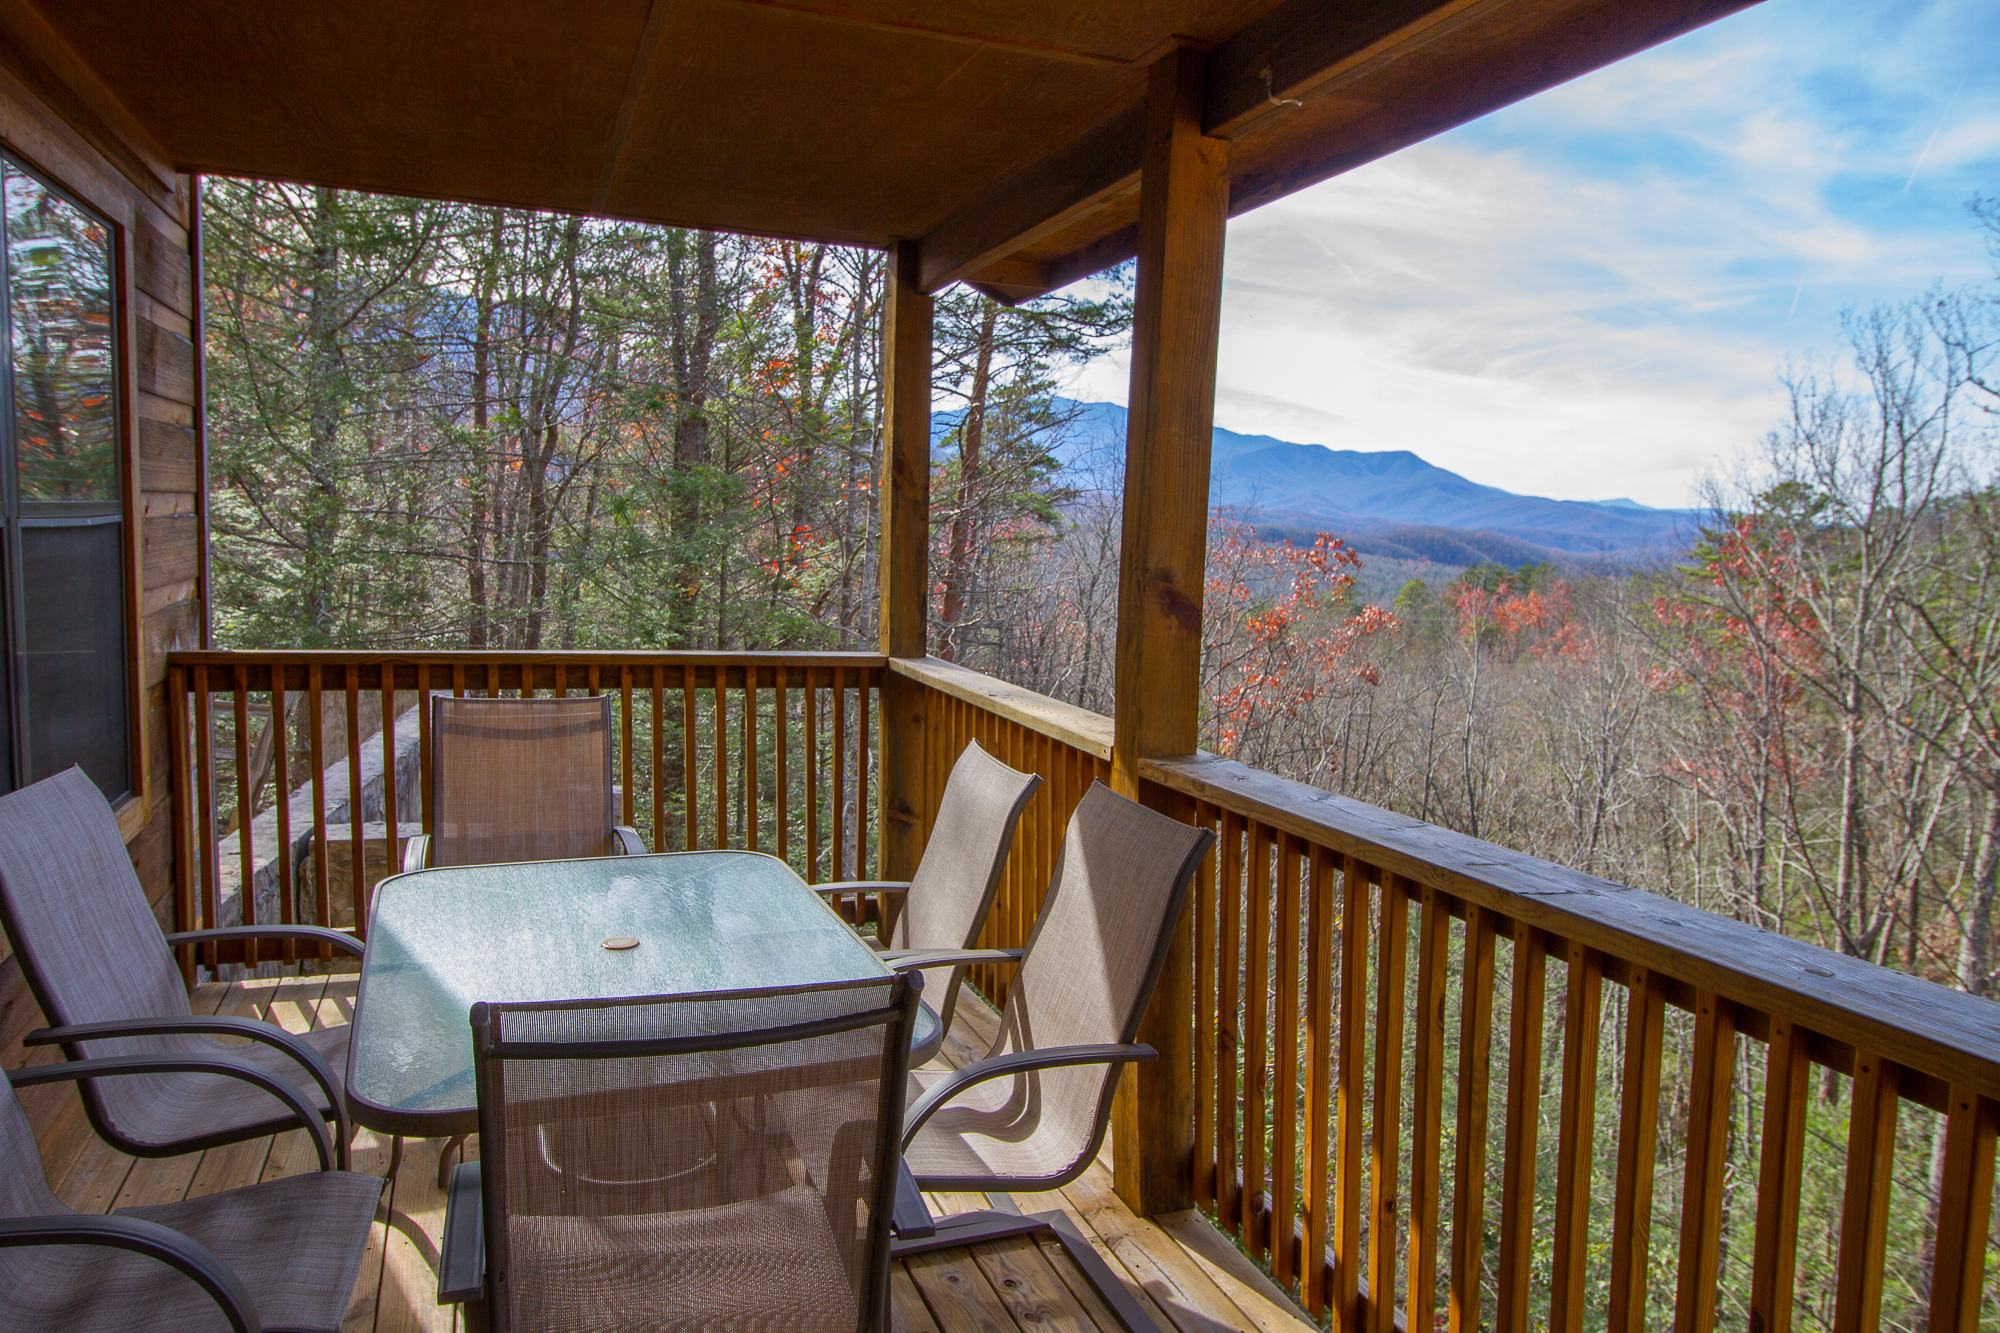 crest pigeon falcon tennessee bedroom cabins forge rental sevierville cheap cabin